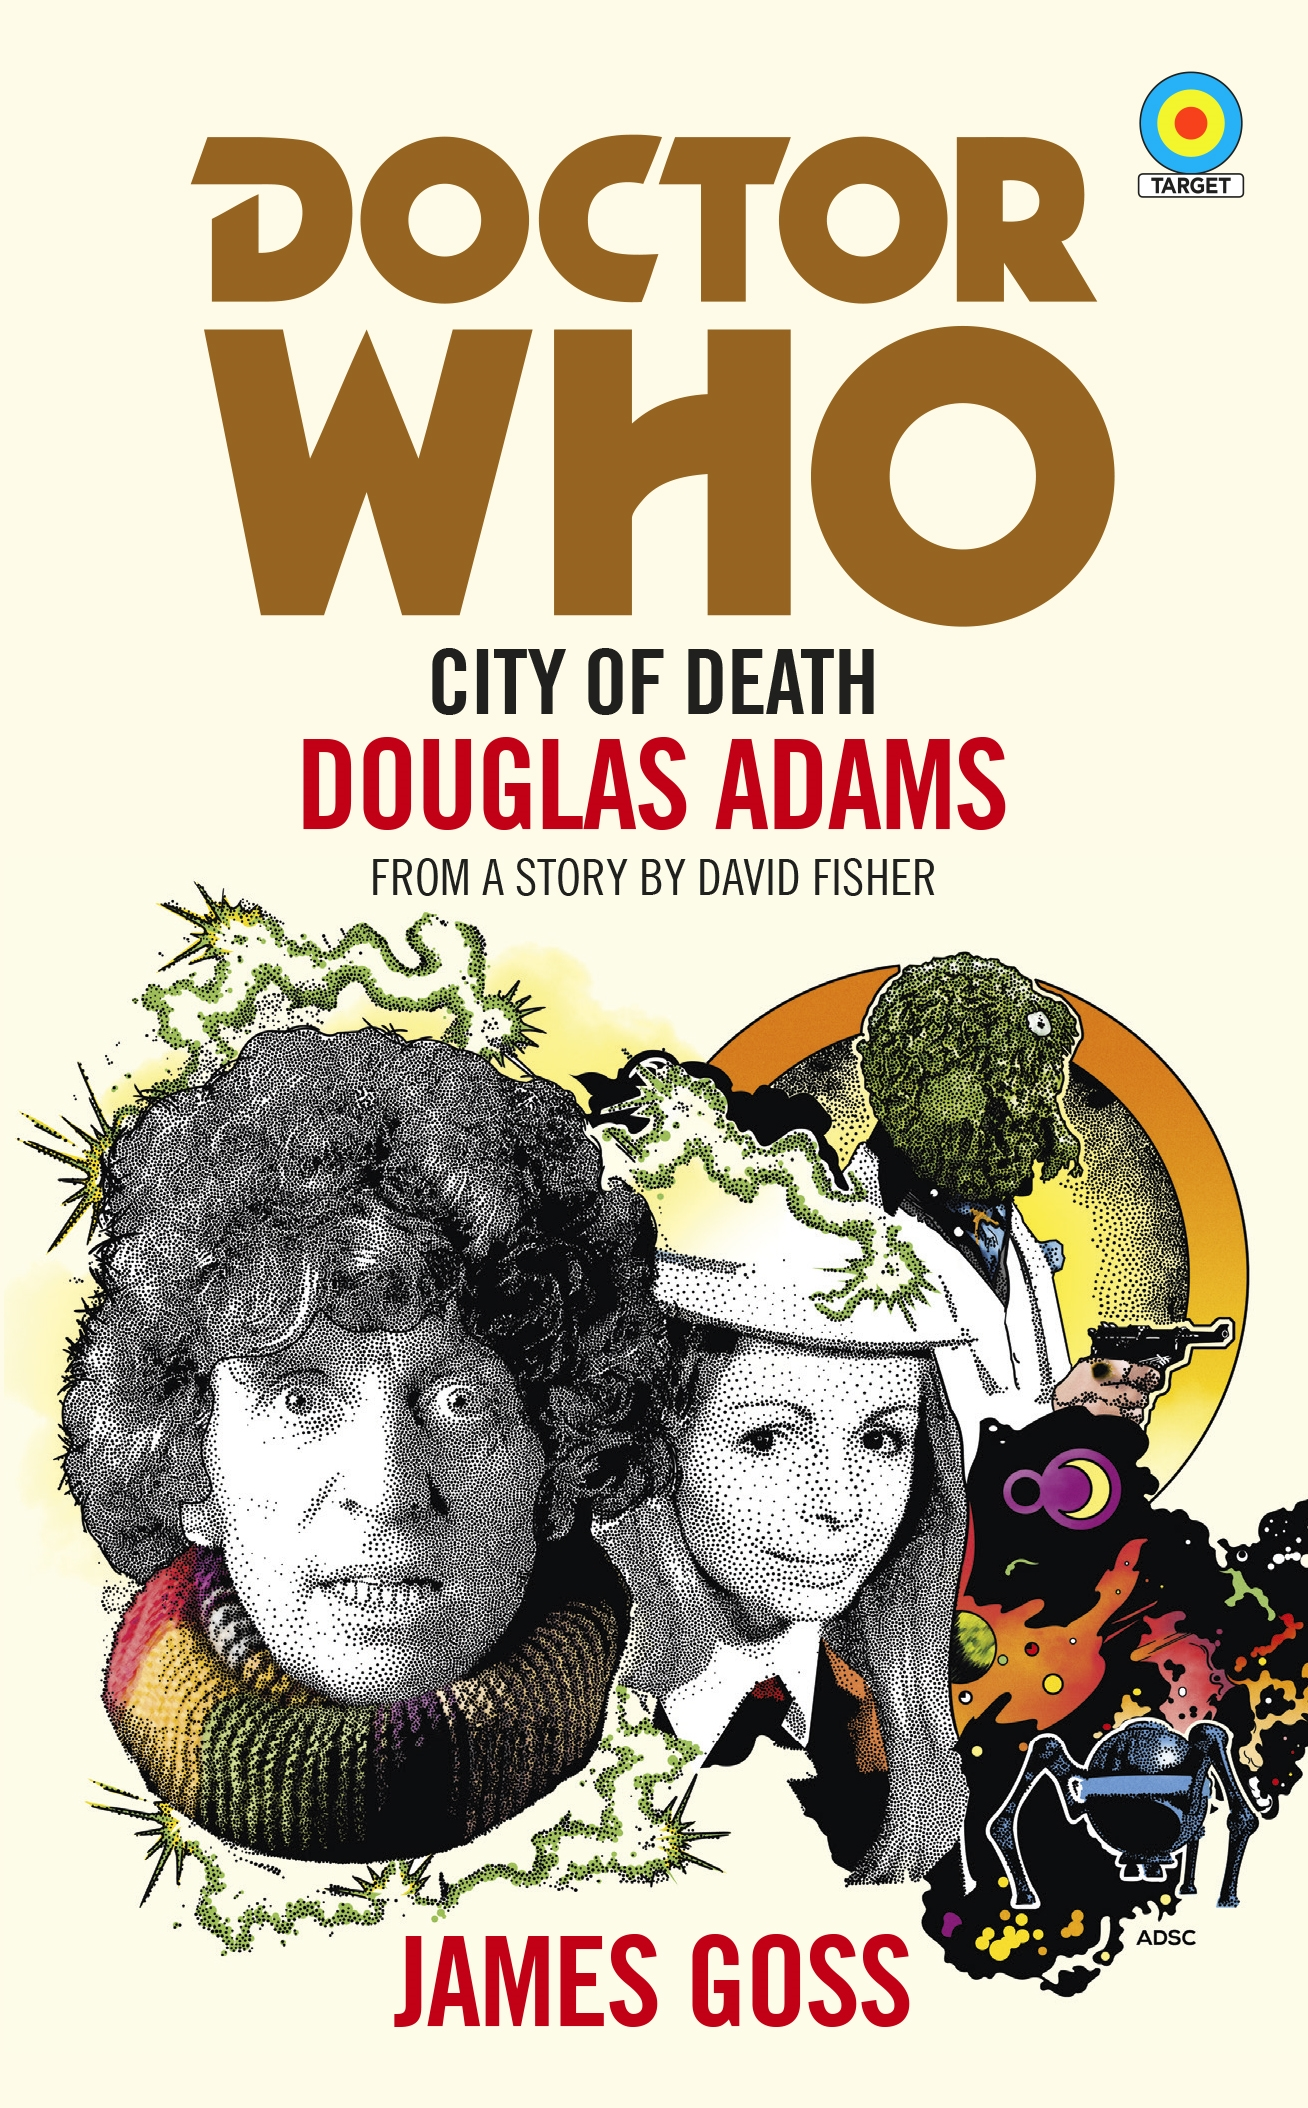 Doctor Who: City of Death (PB, Target)